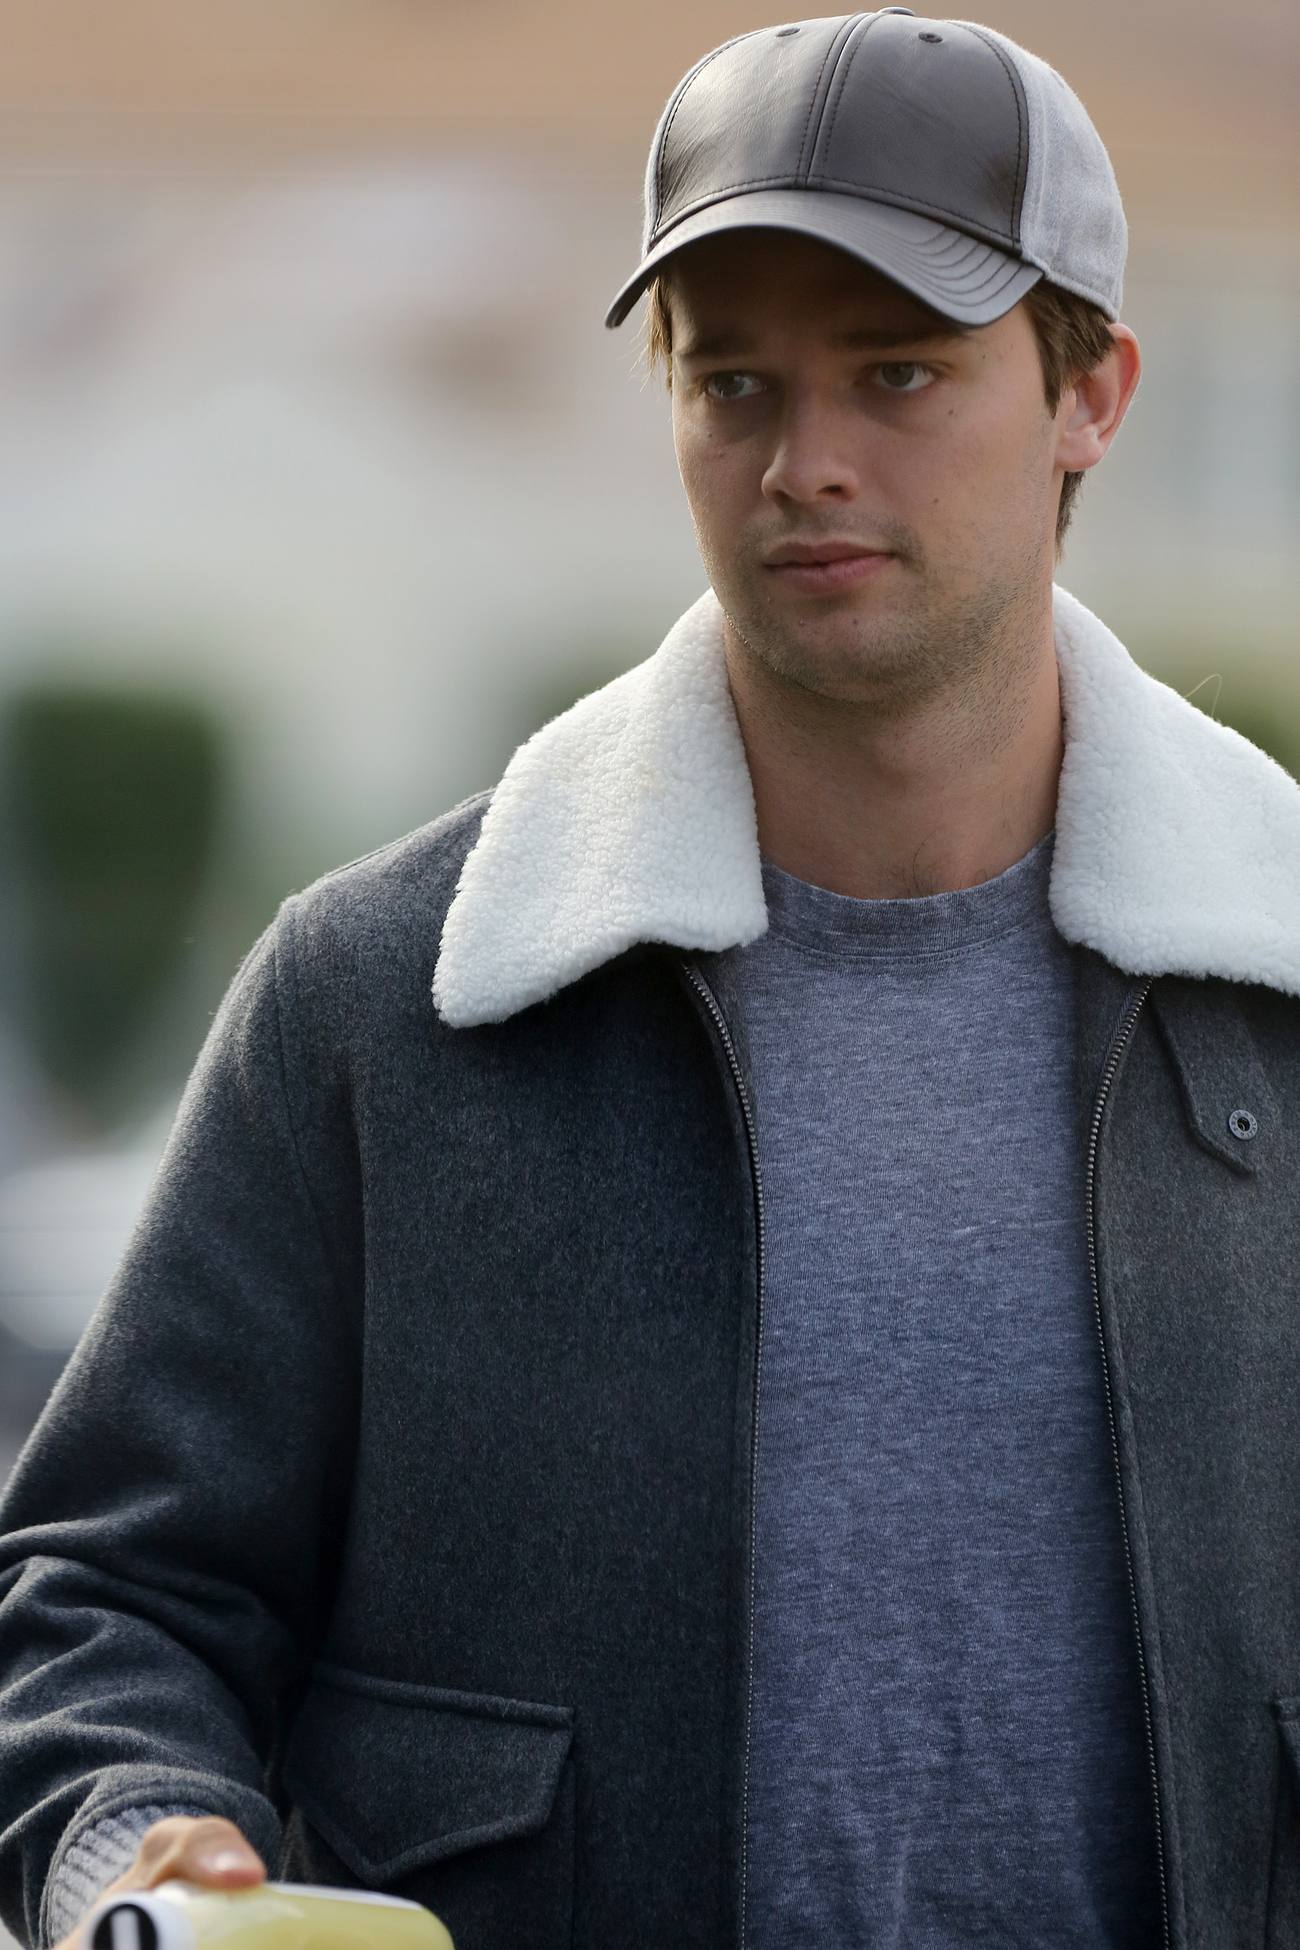 Patrick Schwarzenegger weight loss 2018 | hljtc.net